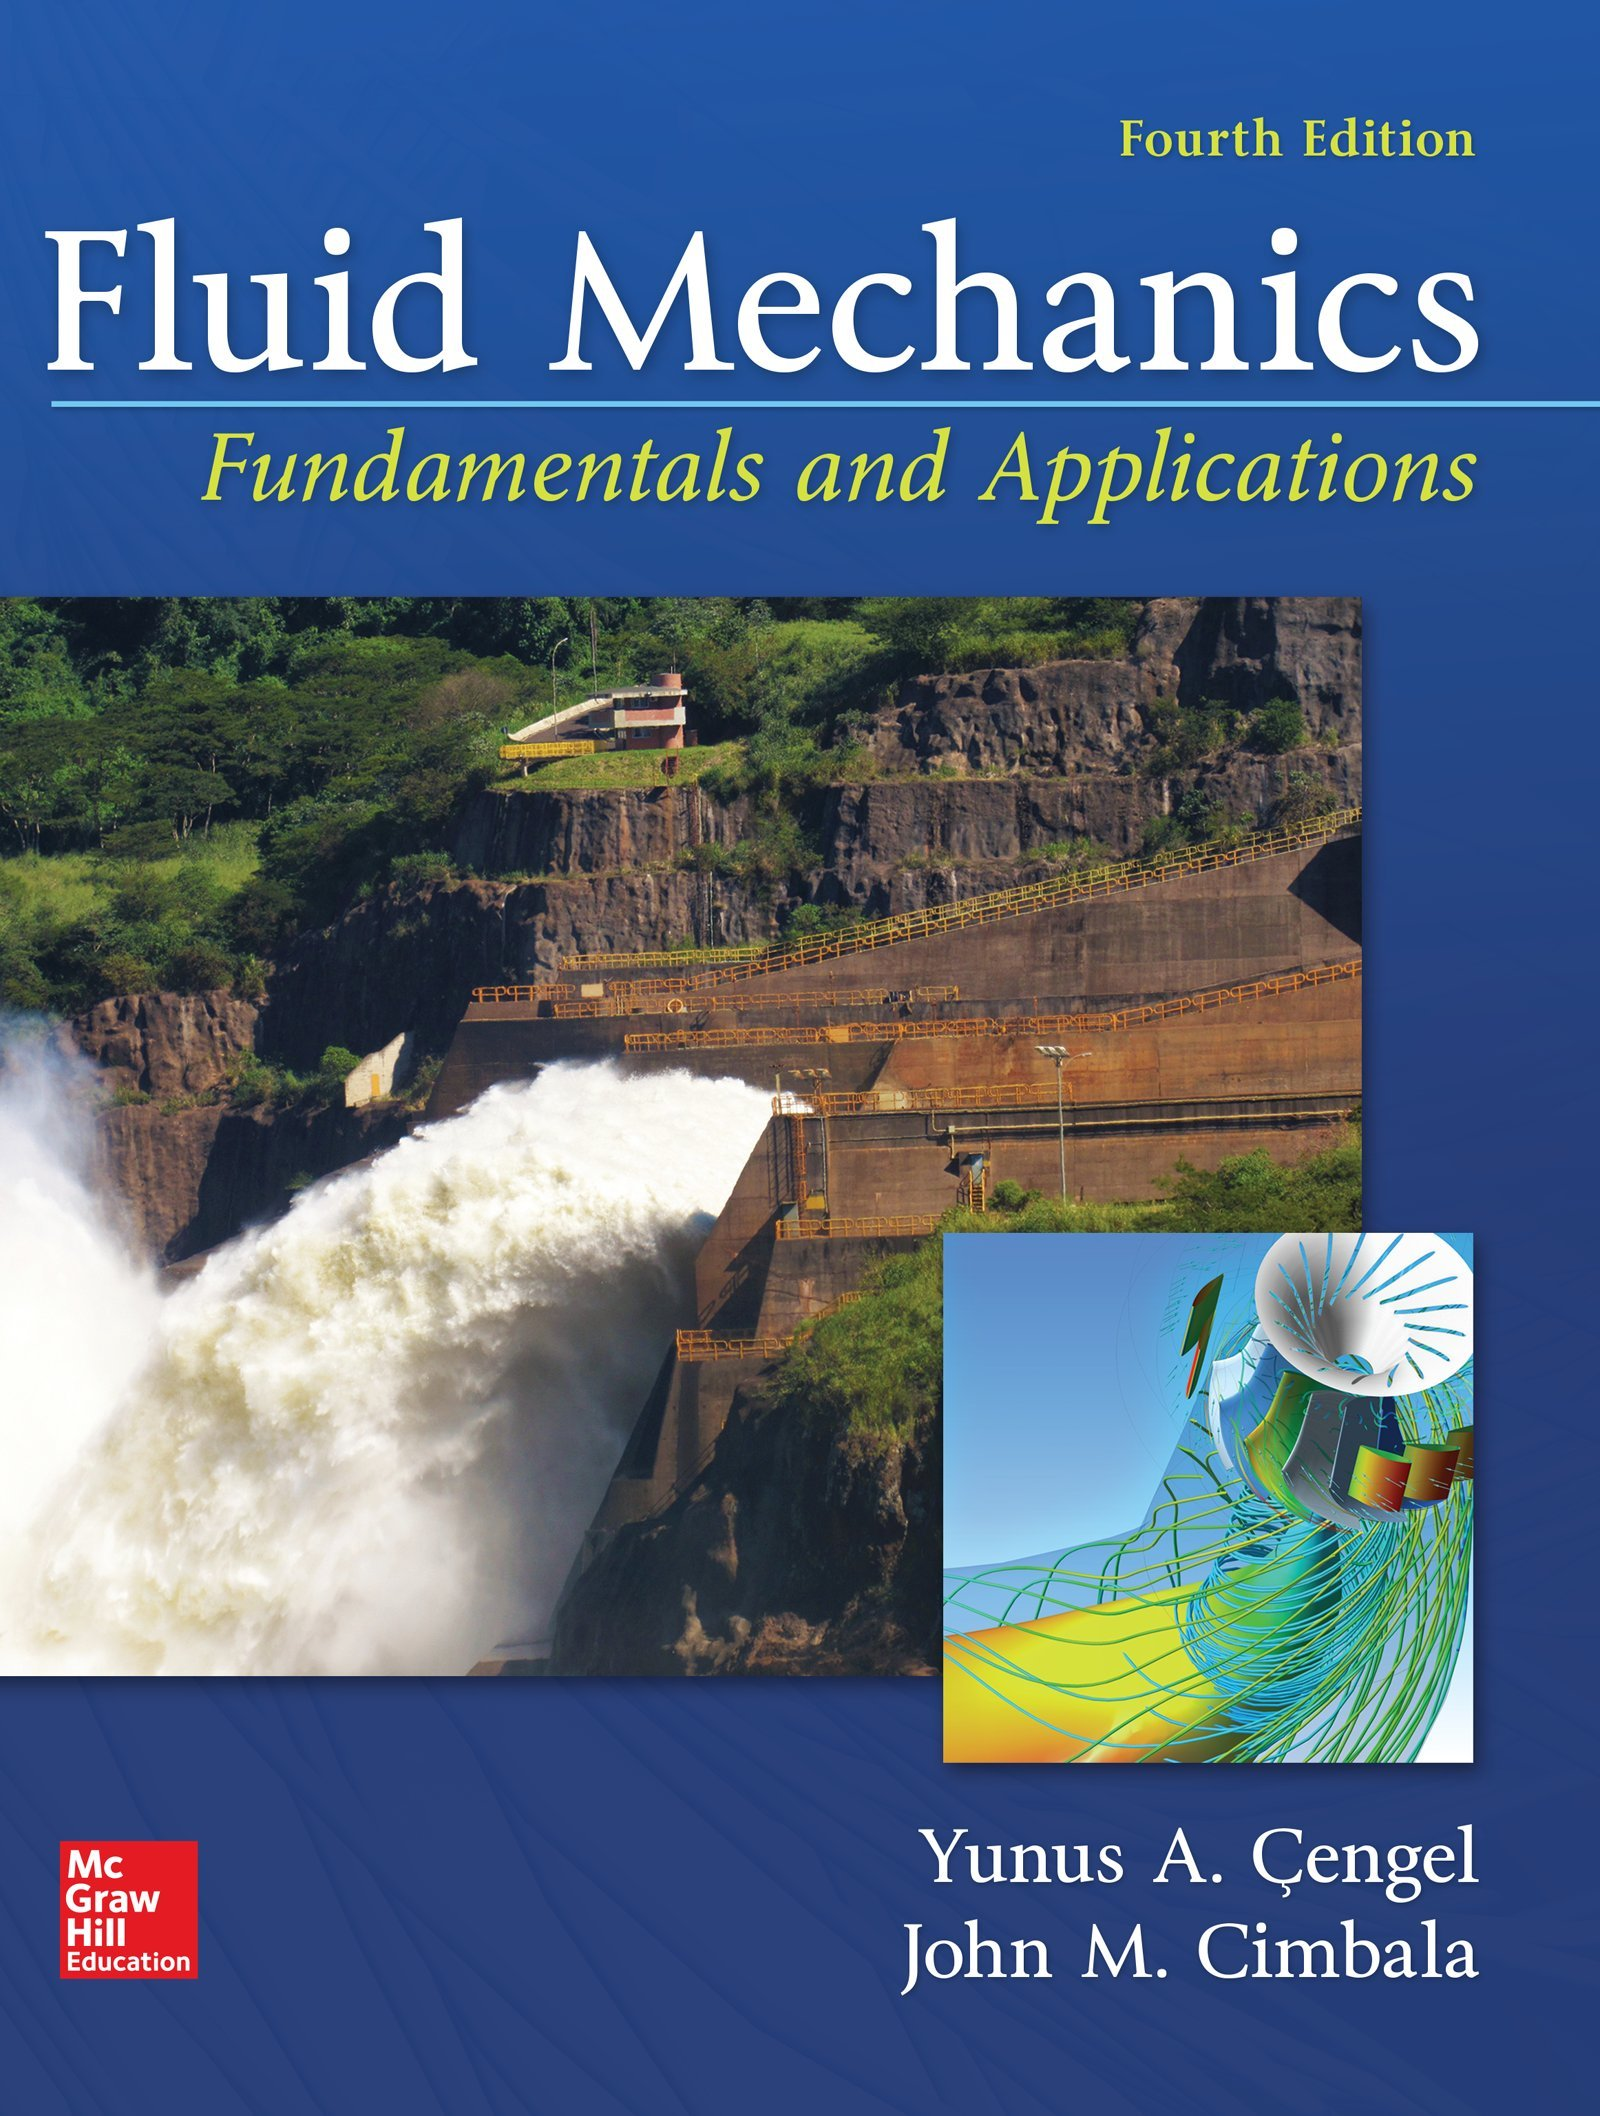 Fluid Mechanics: Fundamentals and Applications: Yunus A Cengel Dr, John M  Cimbala: 9781259696534: Books - Amazon.ca